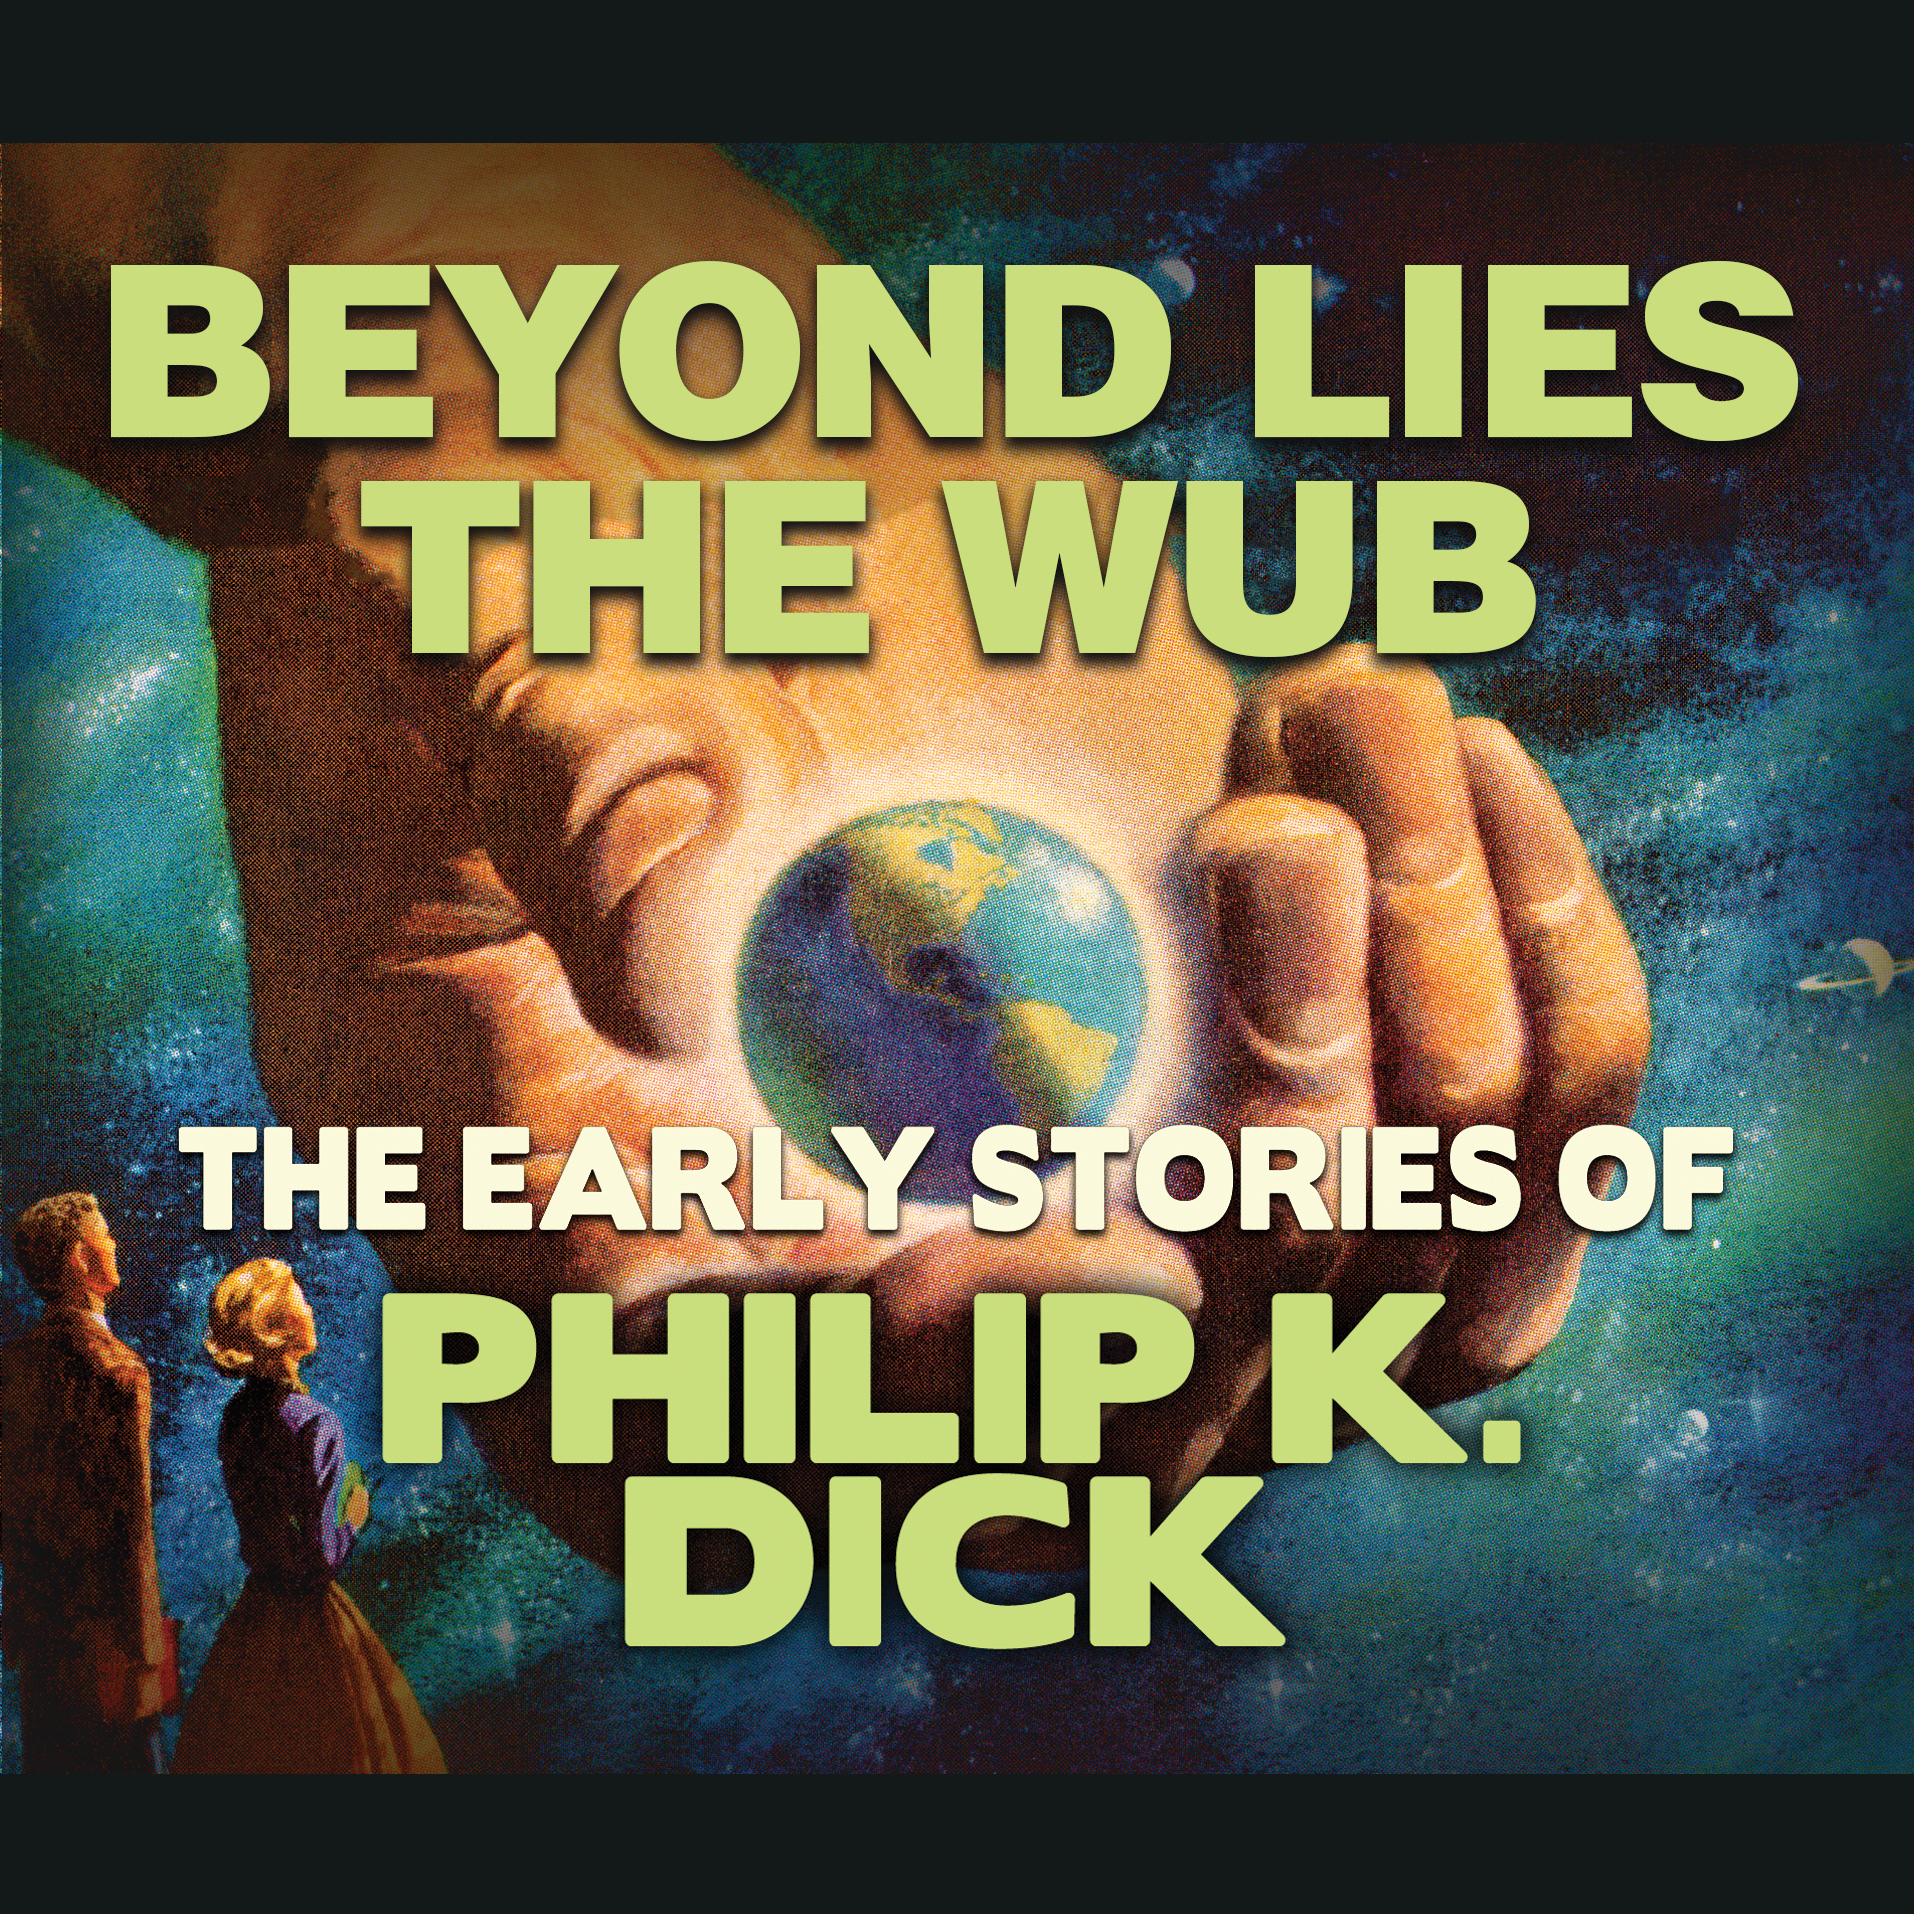 Printable Beyond Lies The Wub Audiobook Cover Art